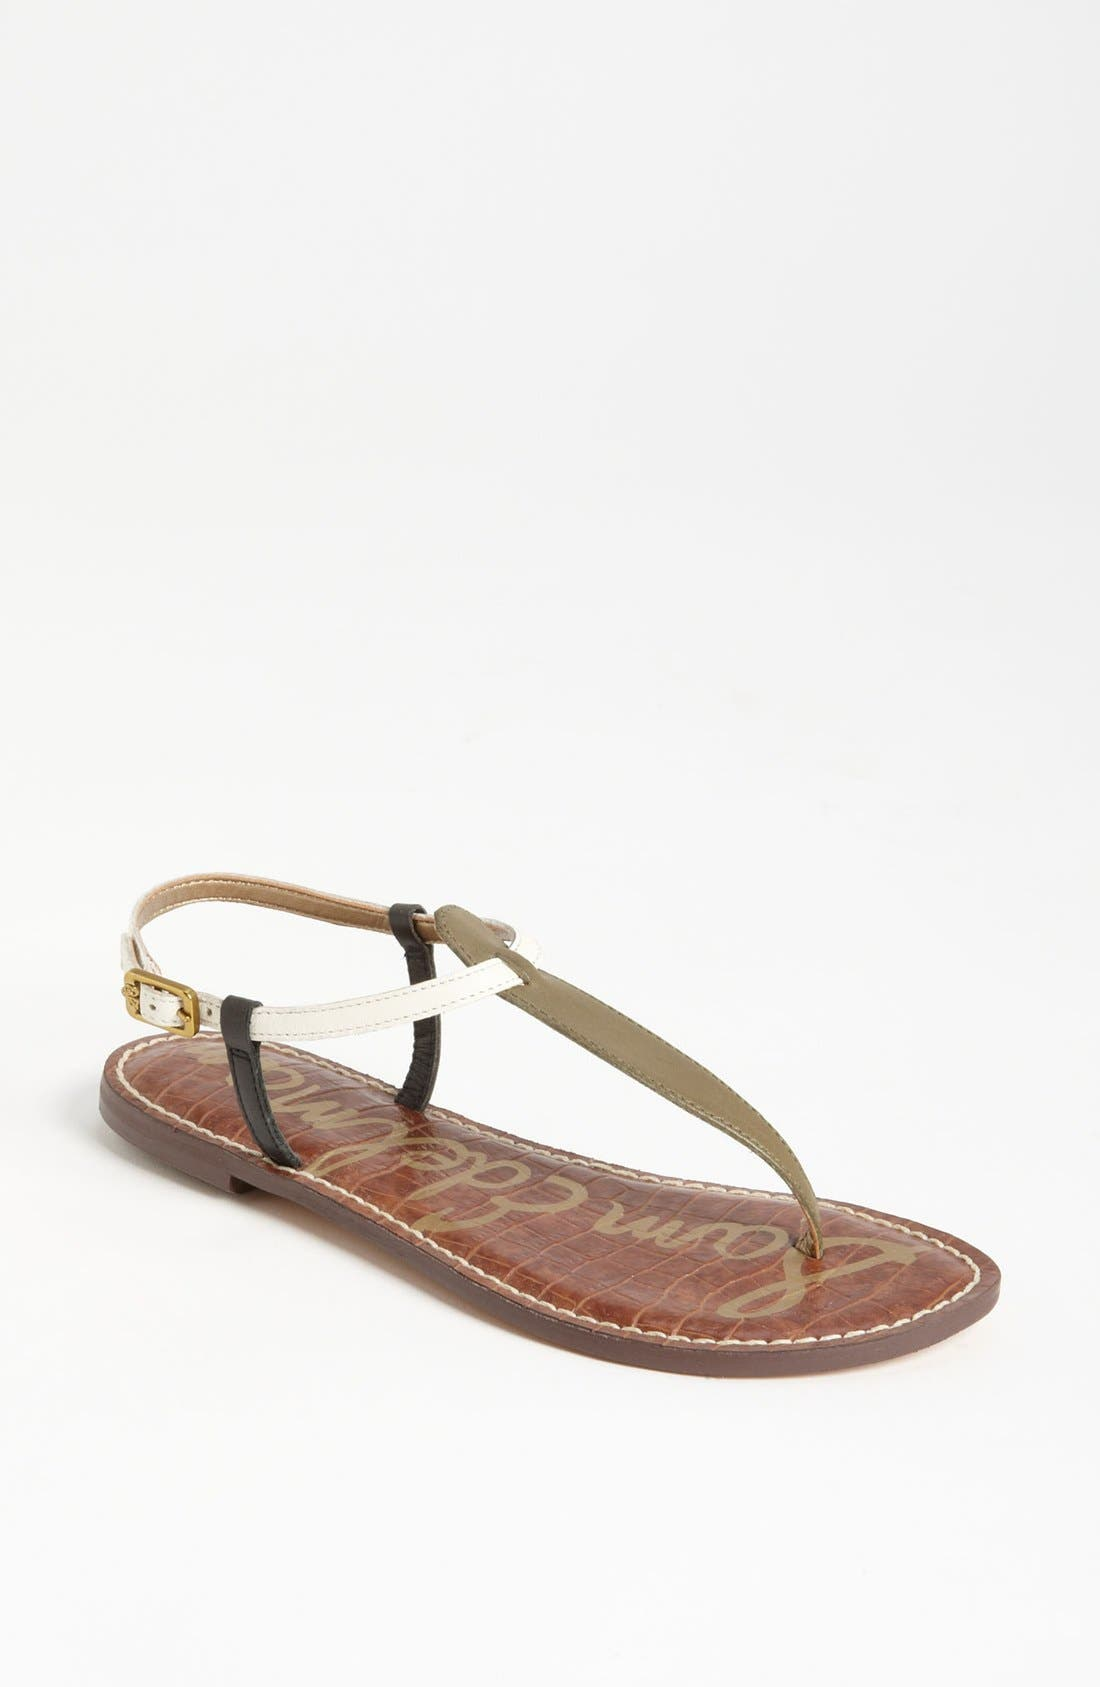 Alternate Image 1 Selected - Sam Edelman Gigi Sandal (Women)